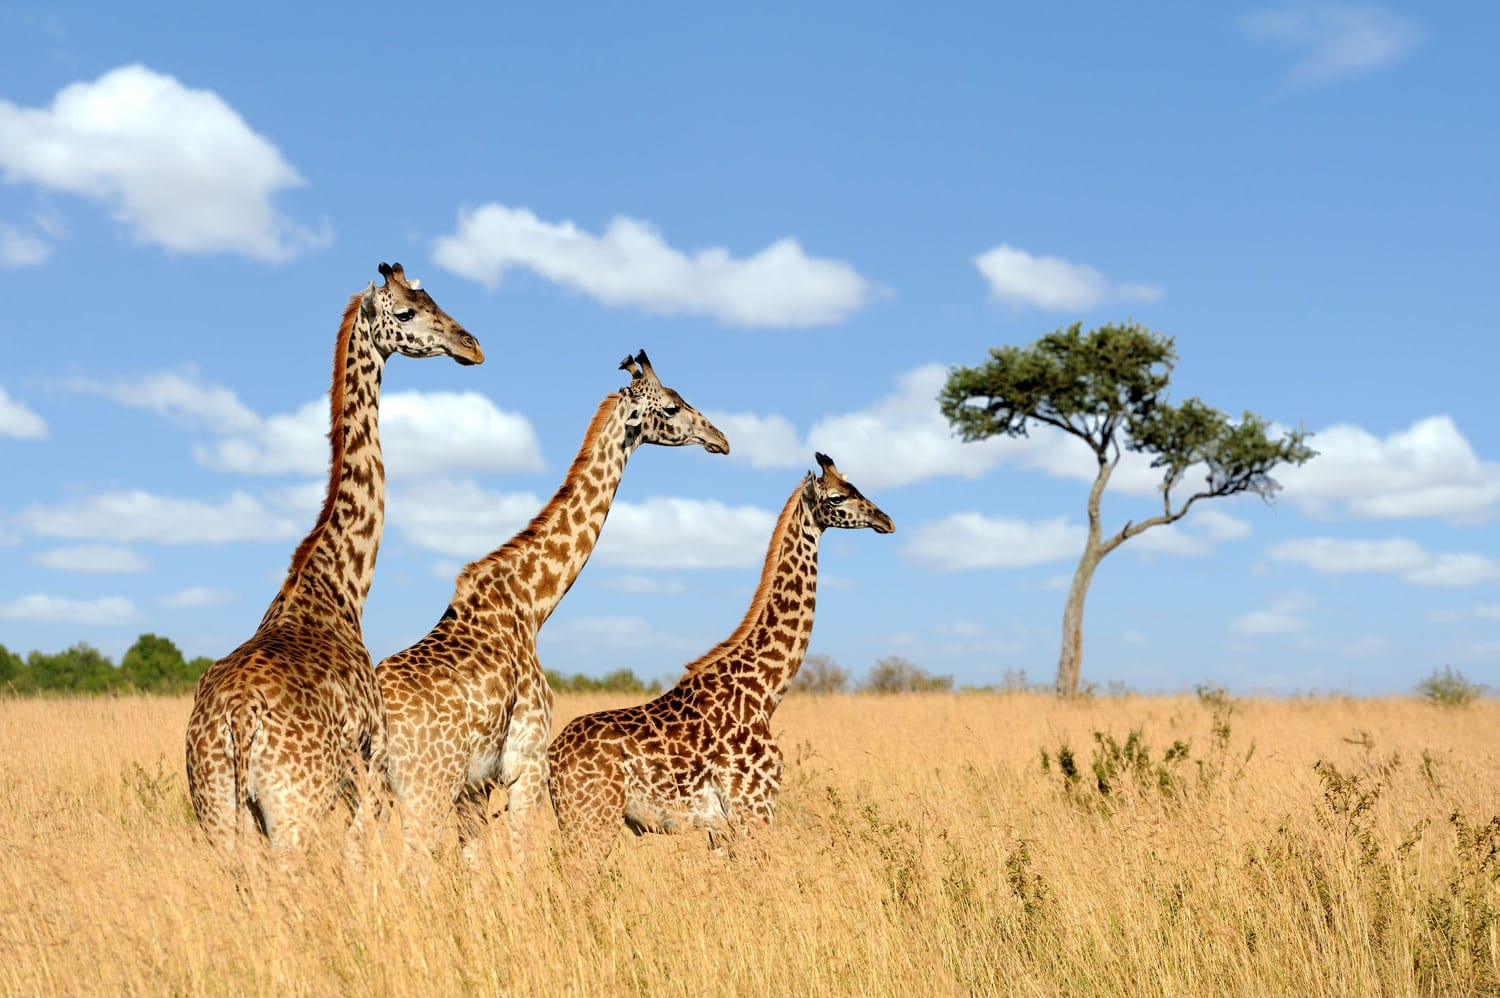 Group of giraffes in National park of Kenya, Africa